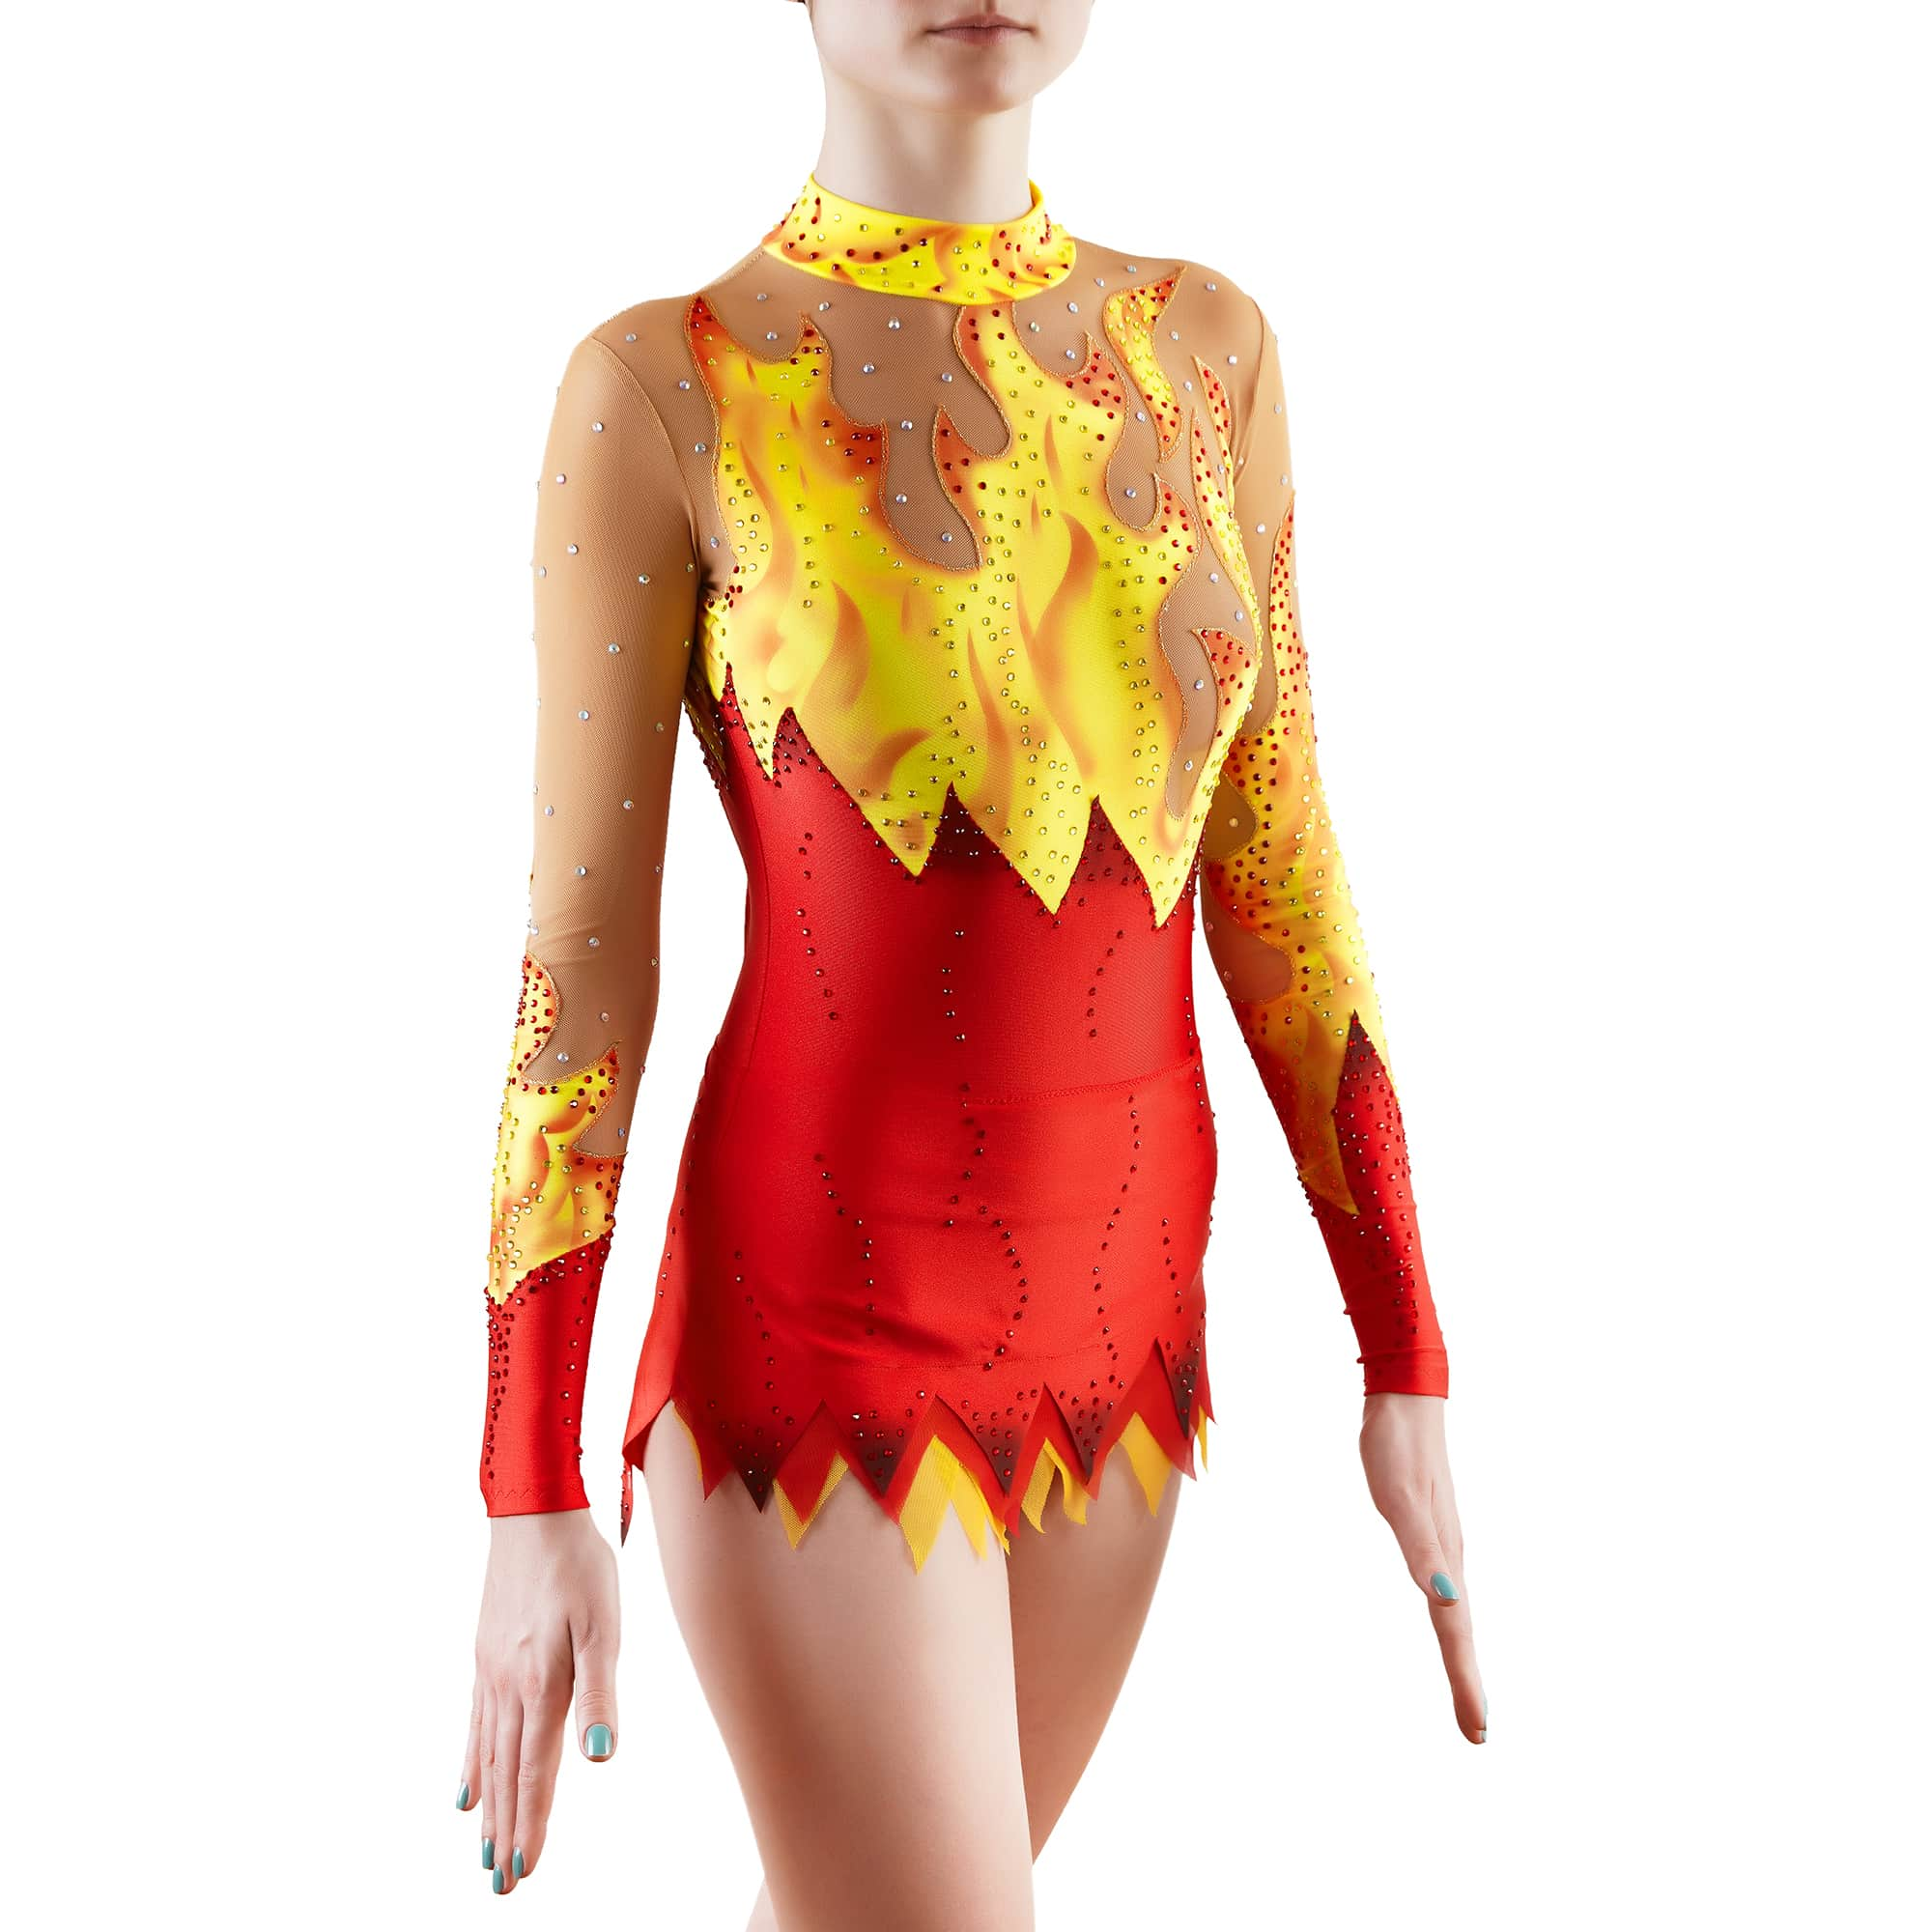 Side view of flame rhythmic gymnastics leotard with fire elements made in red and yellow colours with a lot of bright crystals